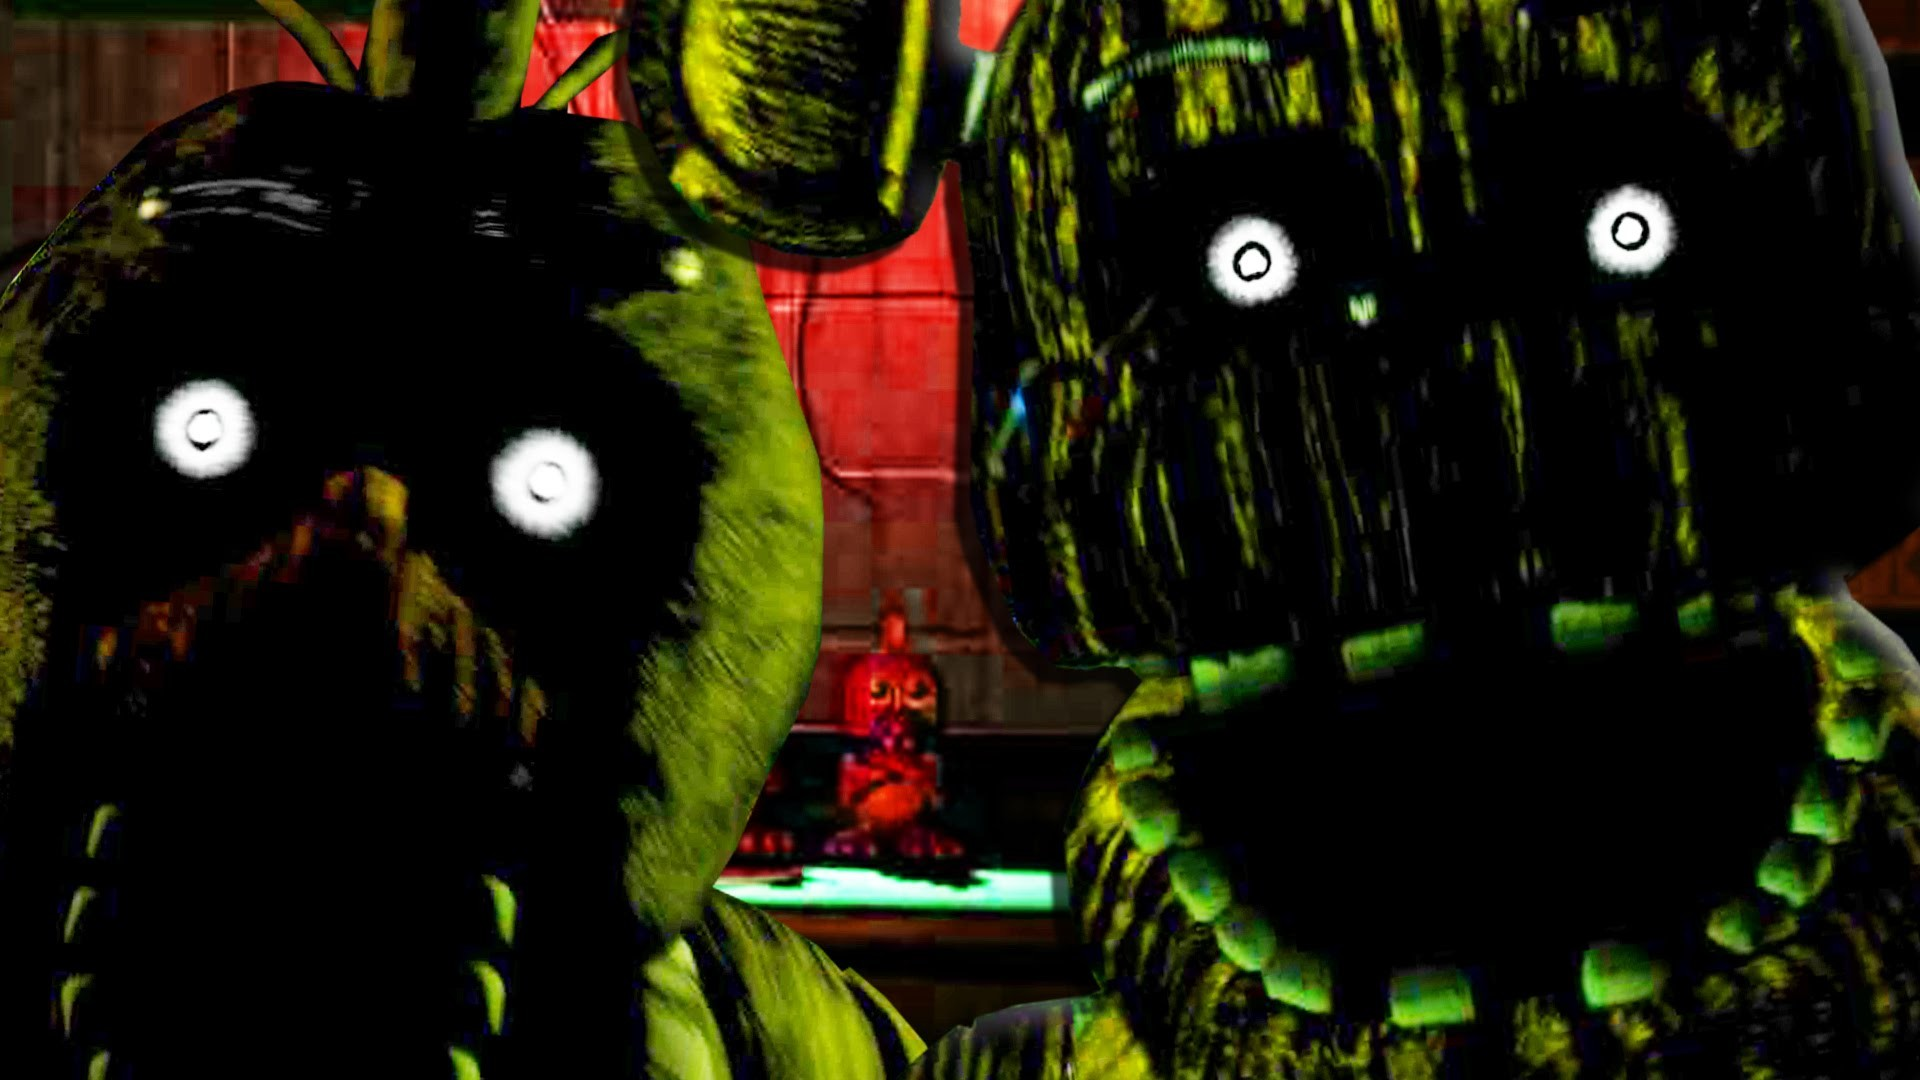 Res: 1920x1080, FIVE NIGHTS AT FREDDY'S 3 - FREDDY FAZBEAR AND CHICA JUMPSCARE! Night 2, 3  Gameplay (FNAF 3) - YouTube